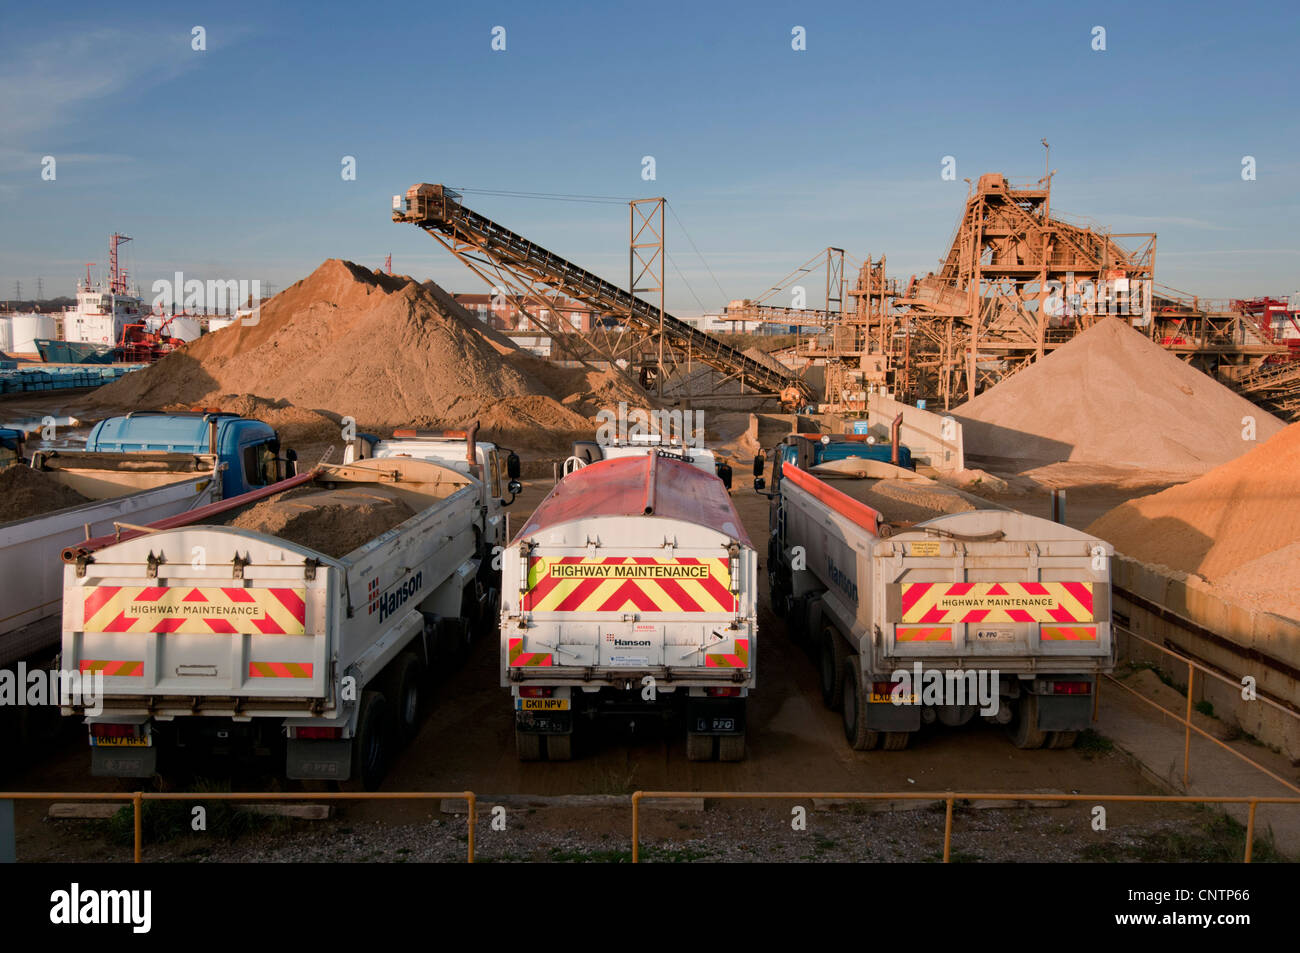 Gritting trucks ready to get on the road. - Stock Image